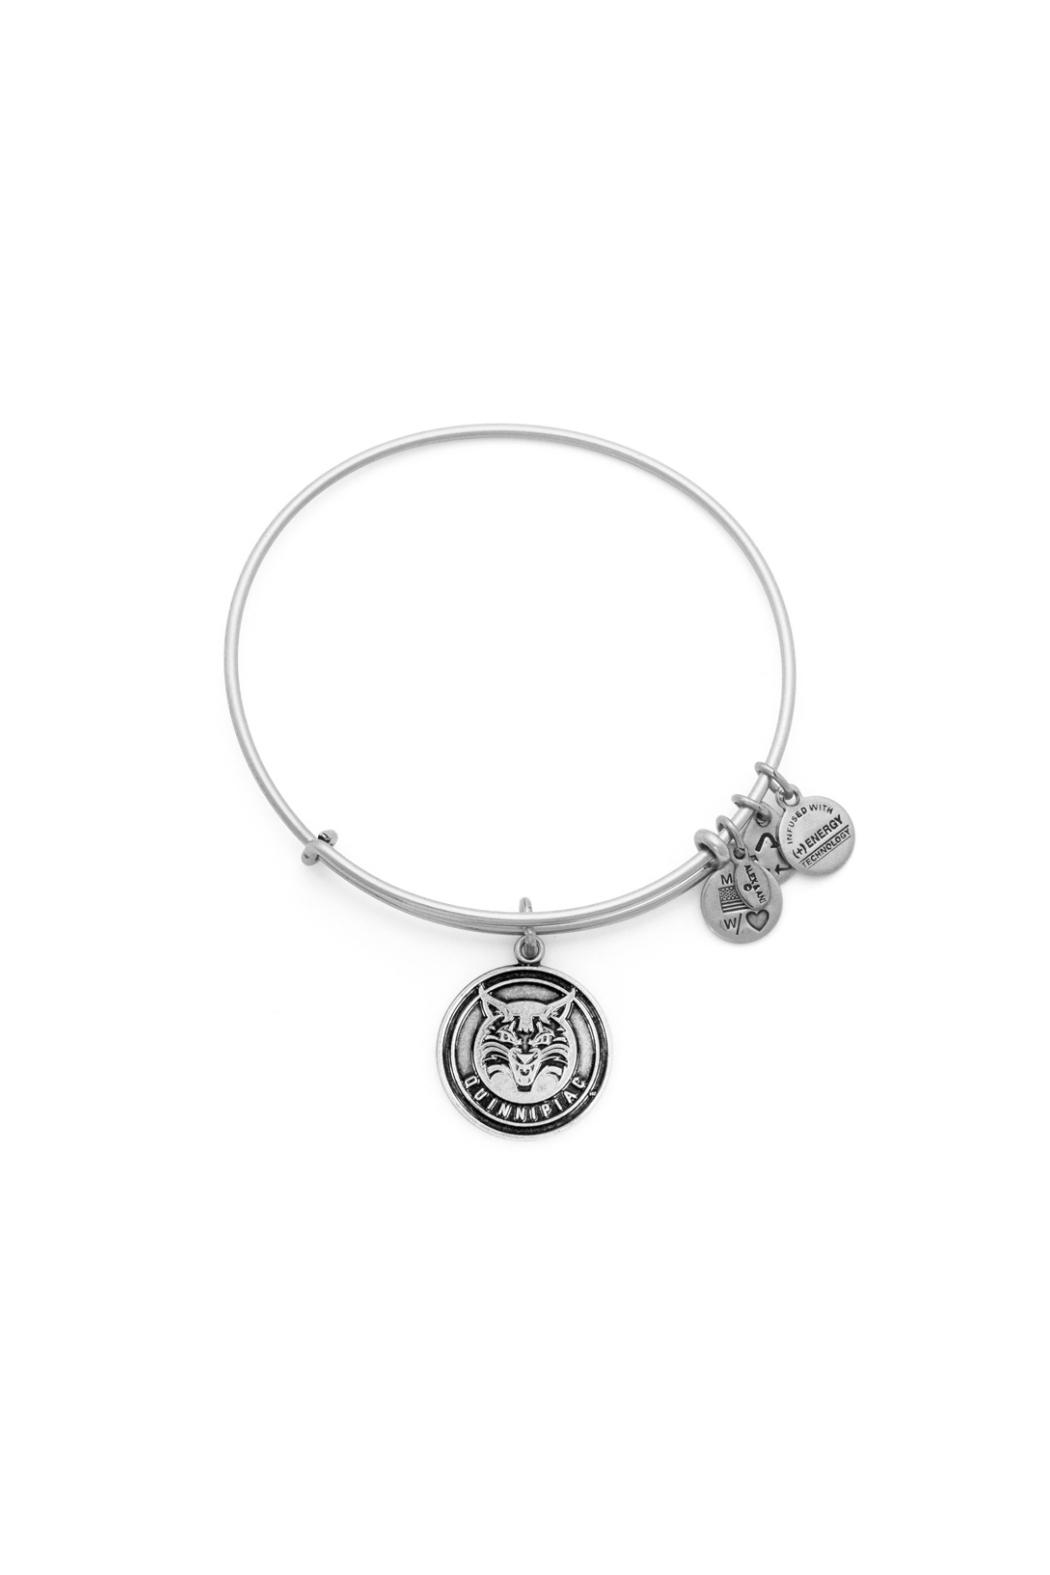 alex and ani quinnipiac university bracelet from connecticut by wave